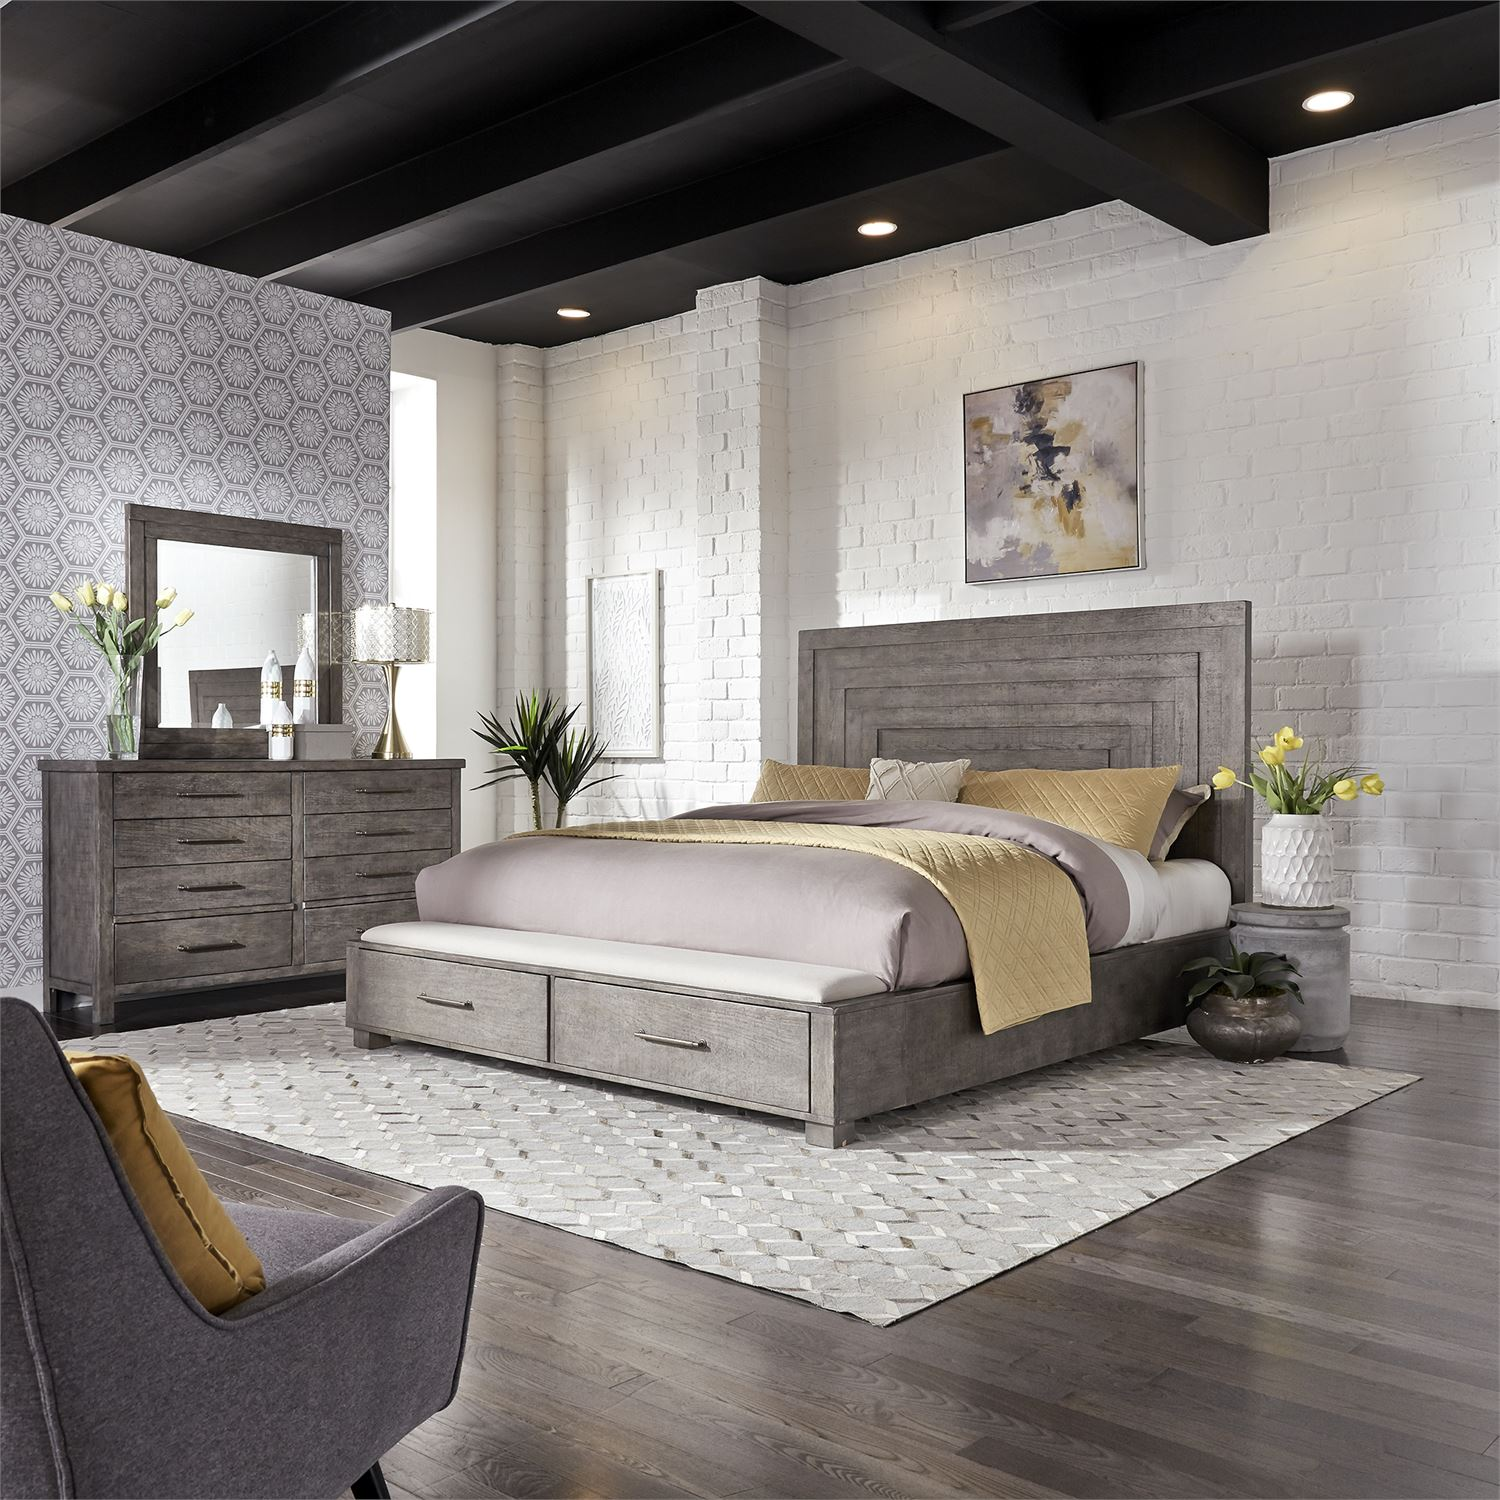 modern farmhouse bedroom collection for sale in